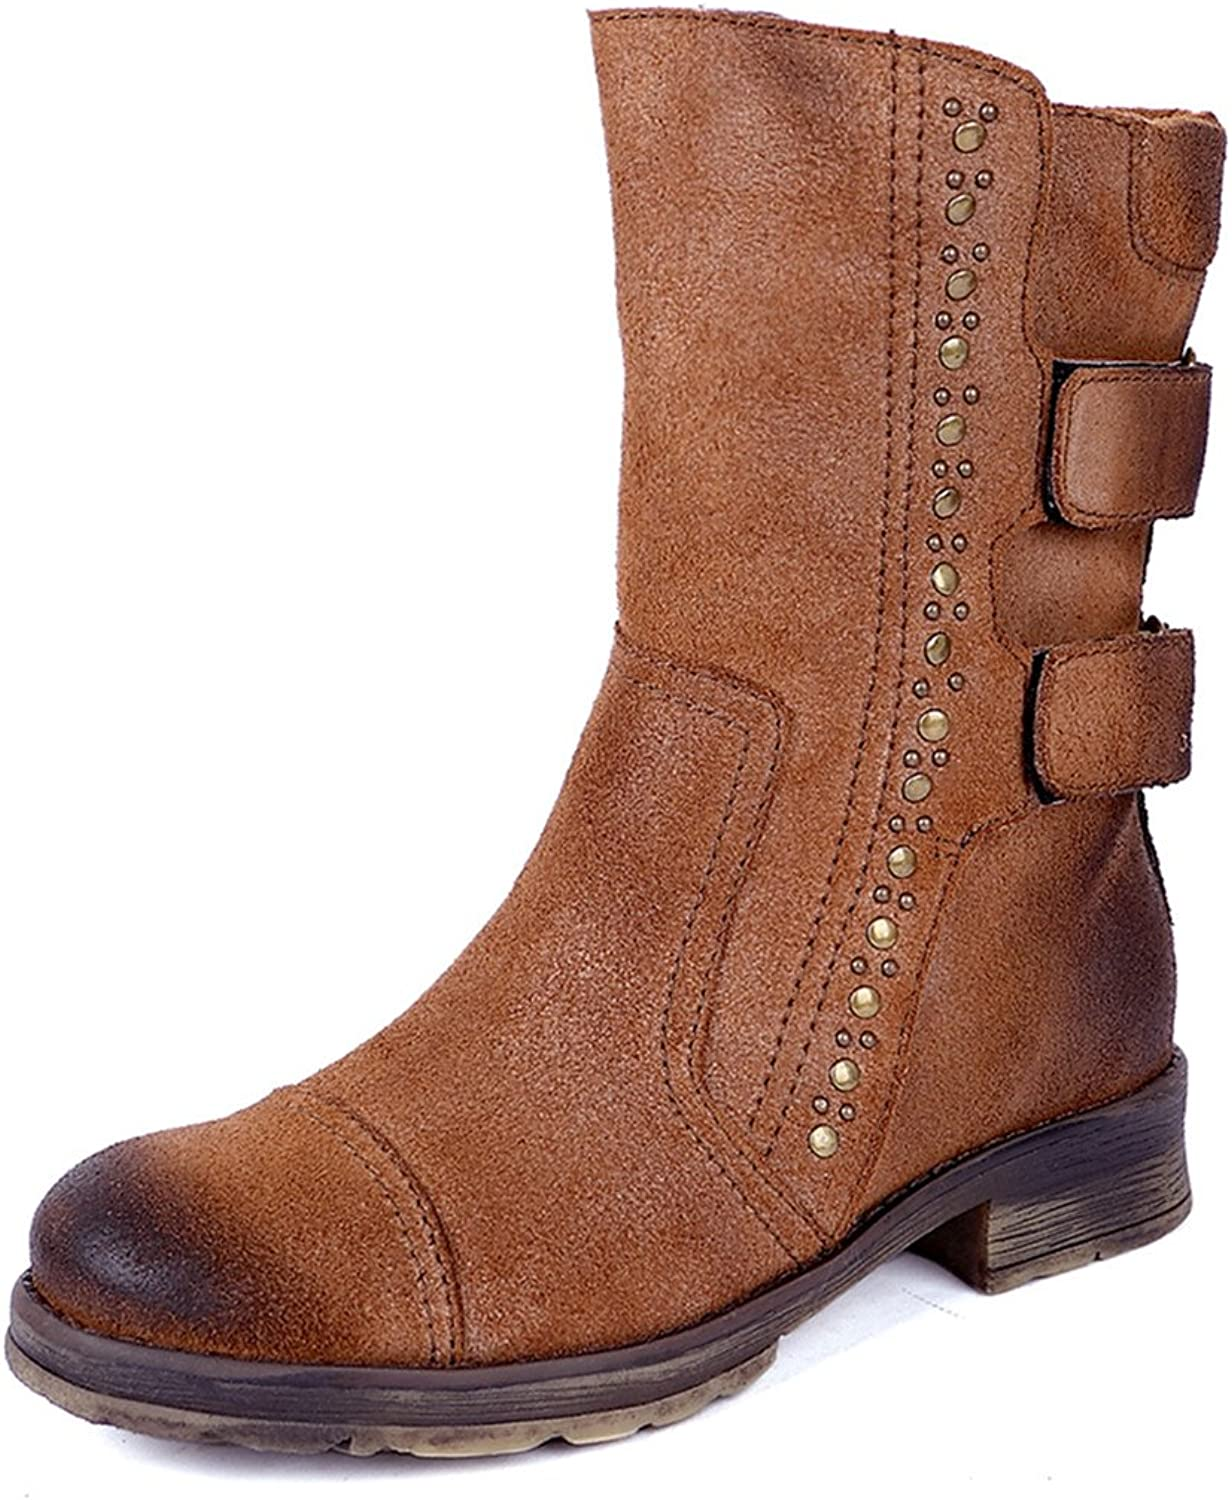 Dwarves Women's Leather Boots Retro Mid Calf Chestnut Comfortable Walking